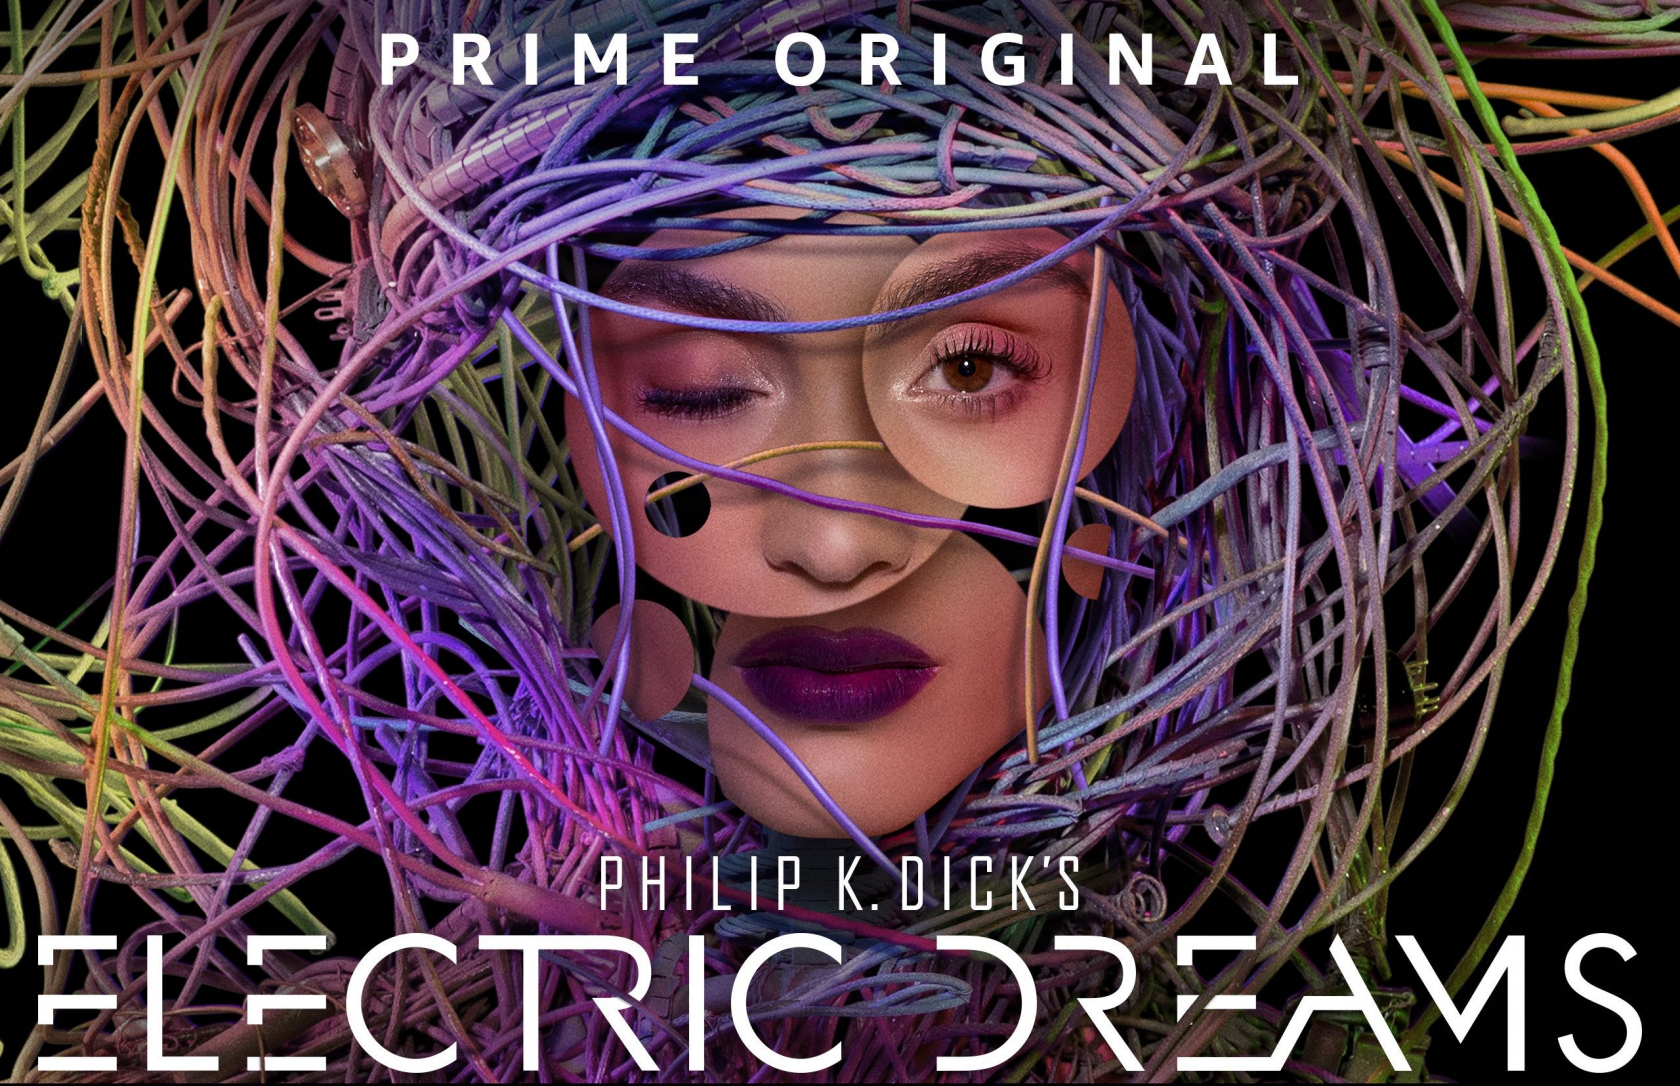 Fan of Black Mirror? Check Out Electric Dreams on Amazon Prime